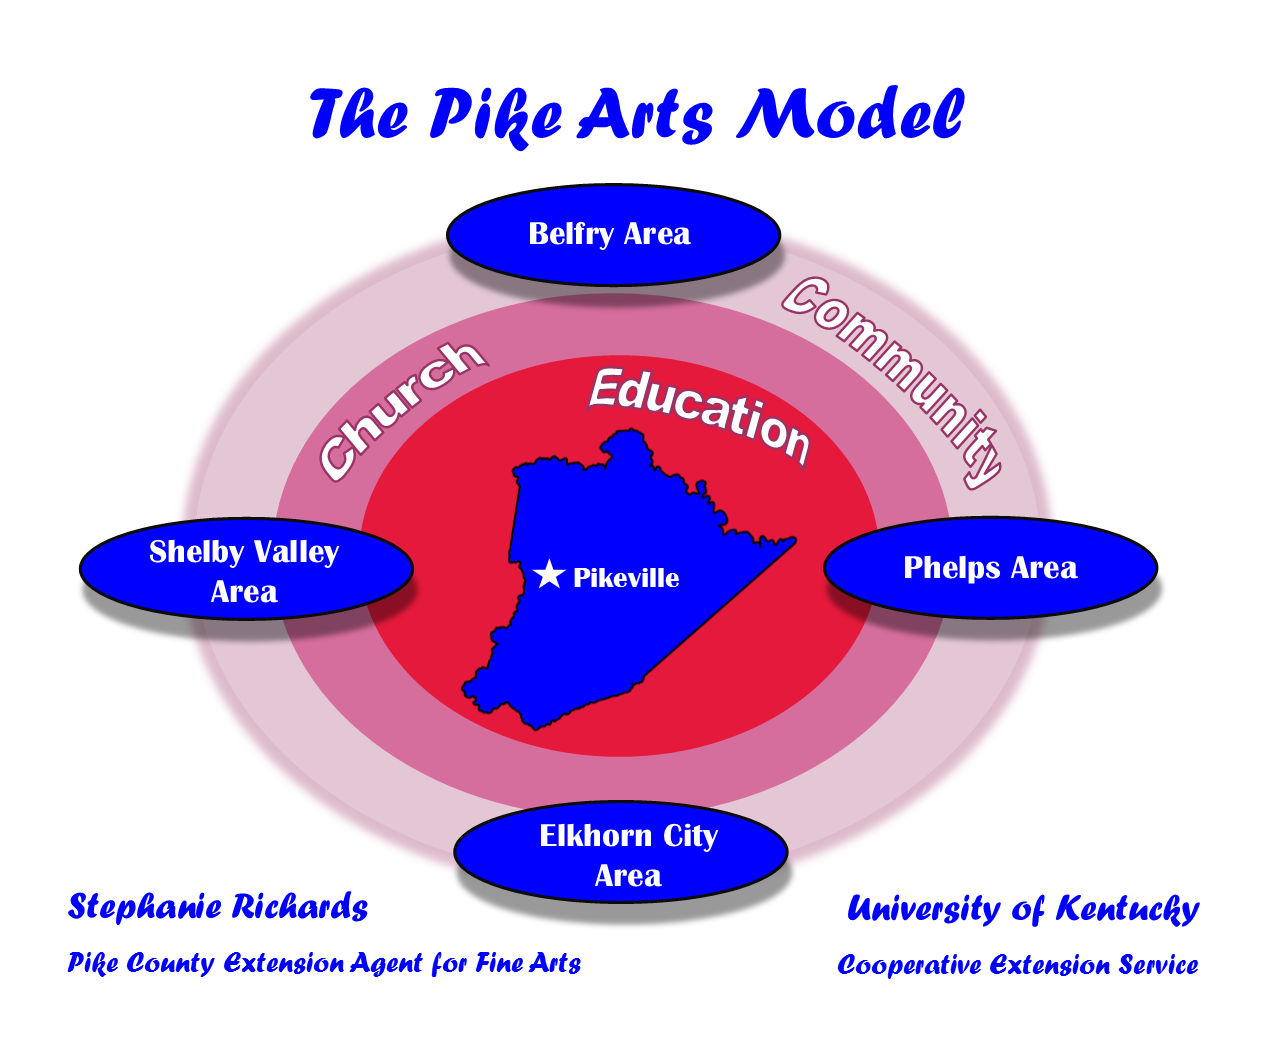 Pike Arts model graph